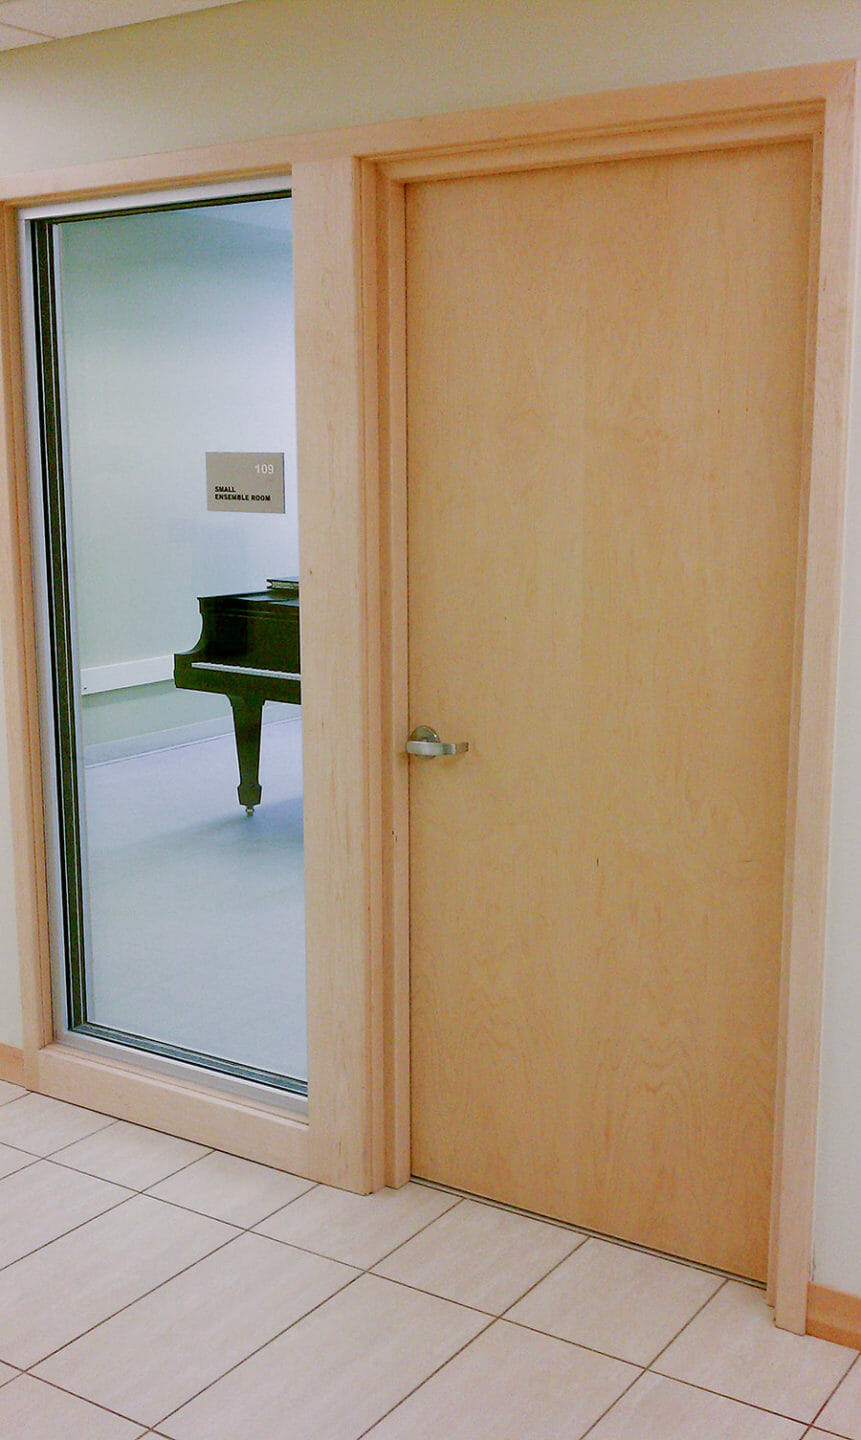 Studio 3d Soundproofing Doors For Recording Studios